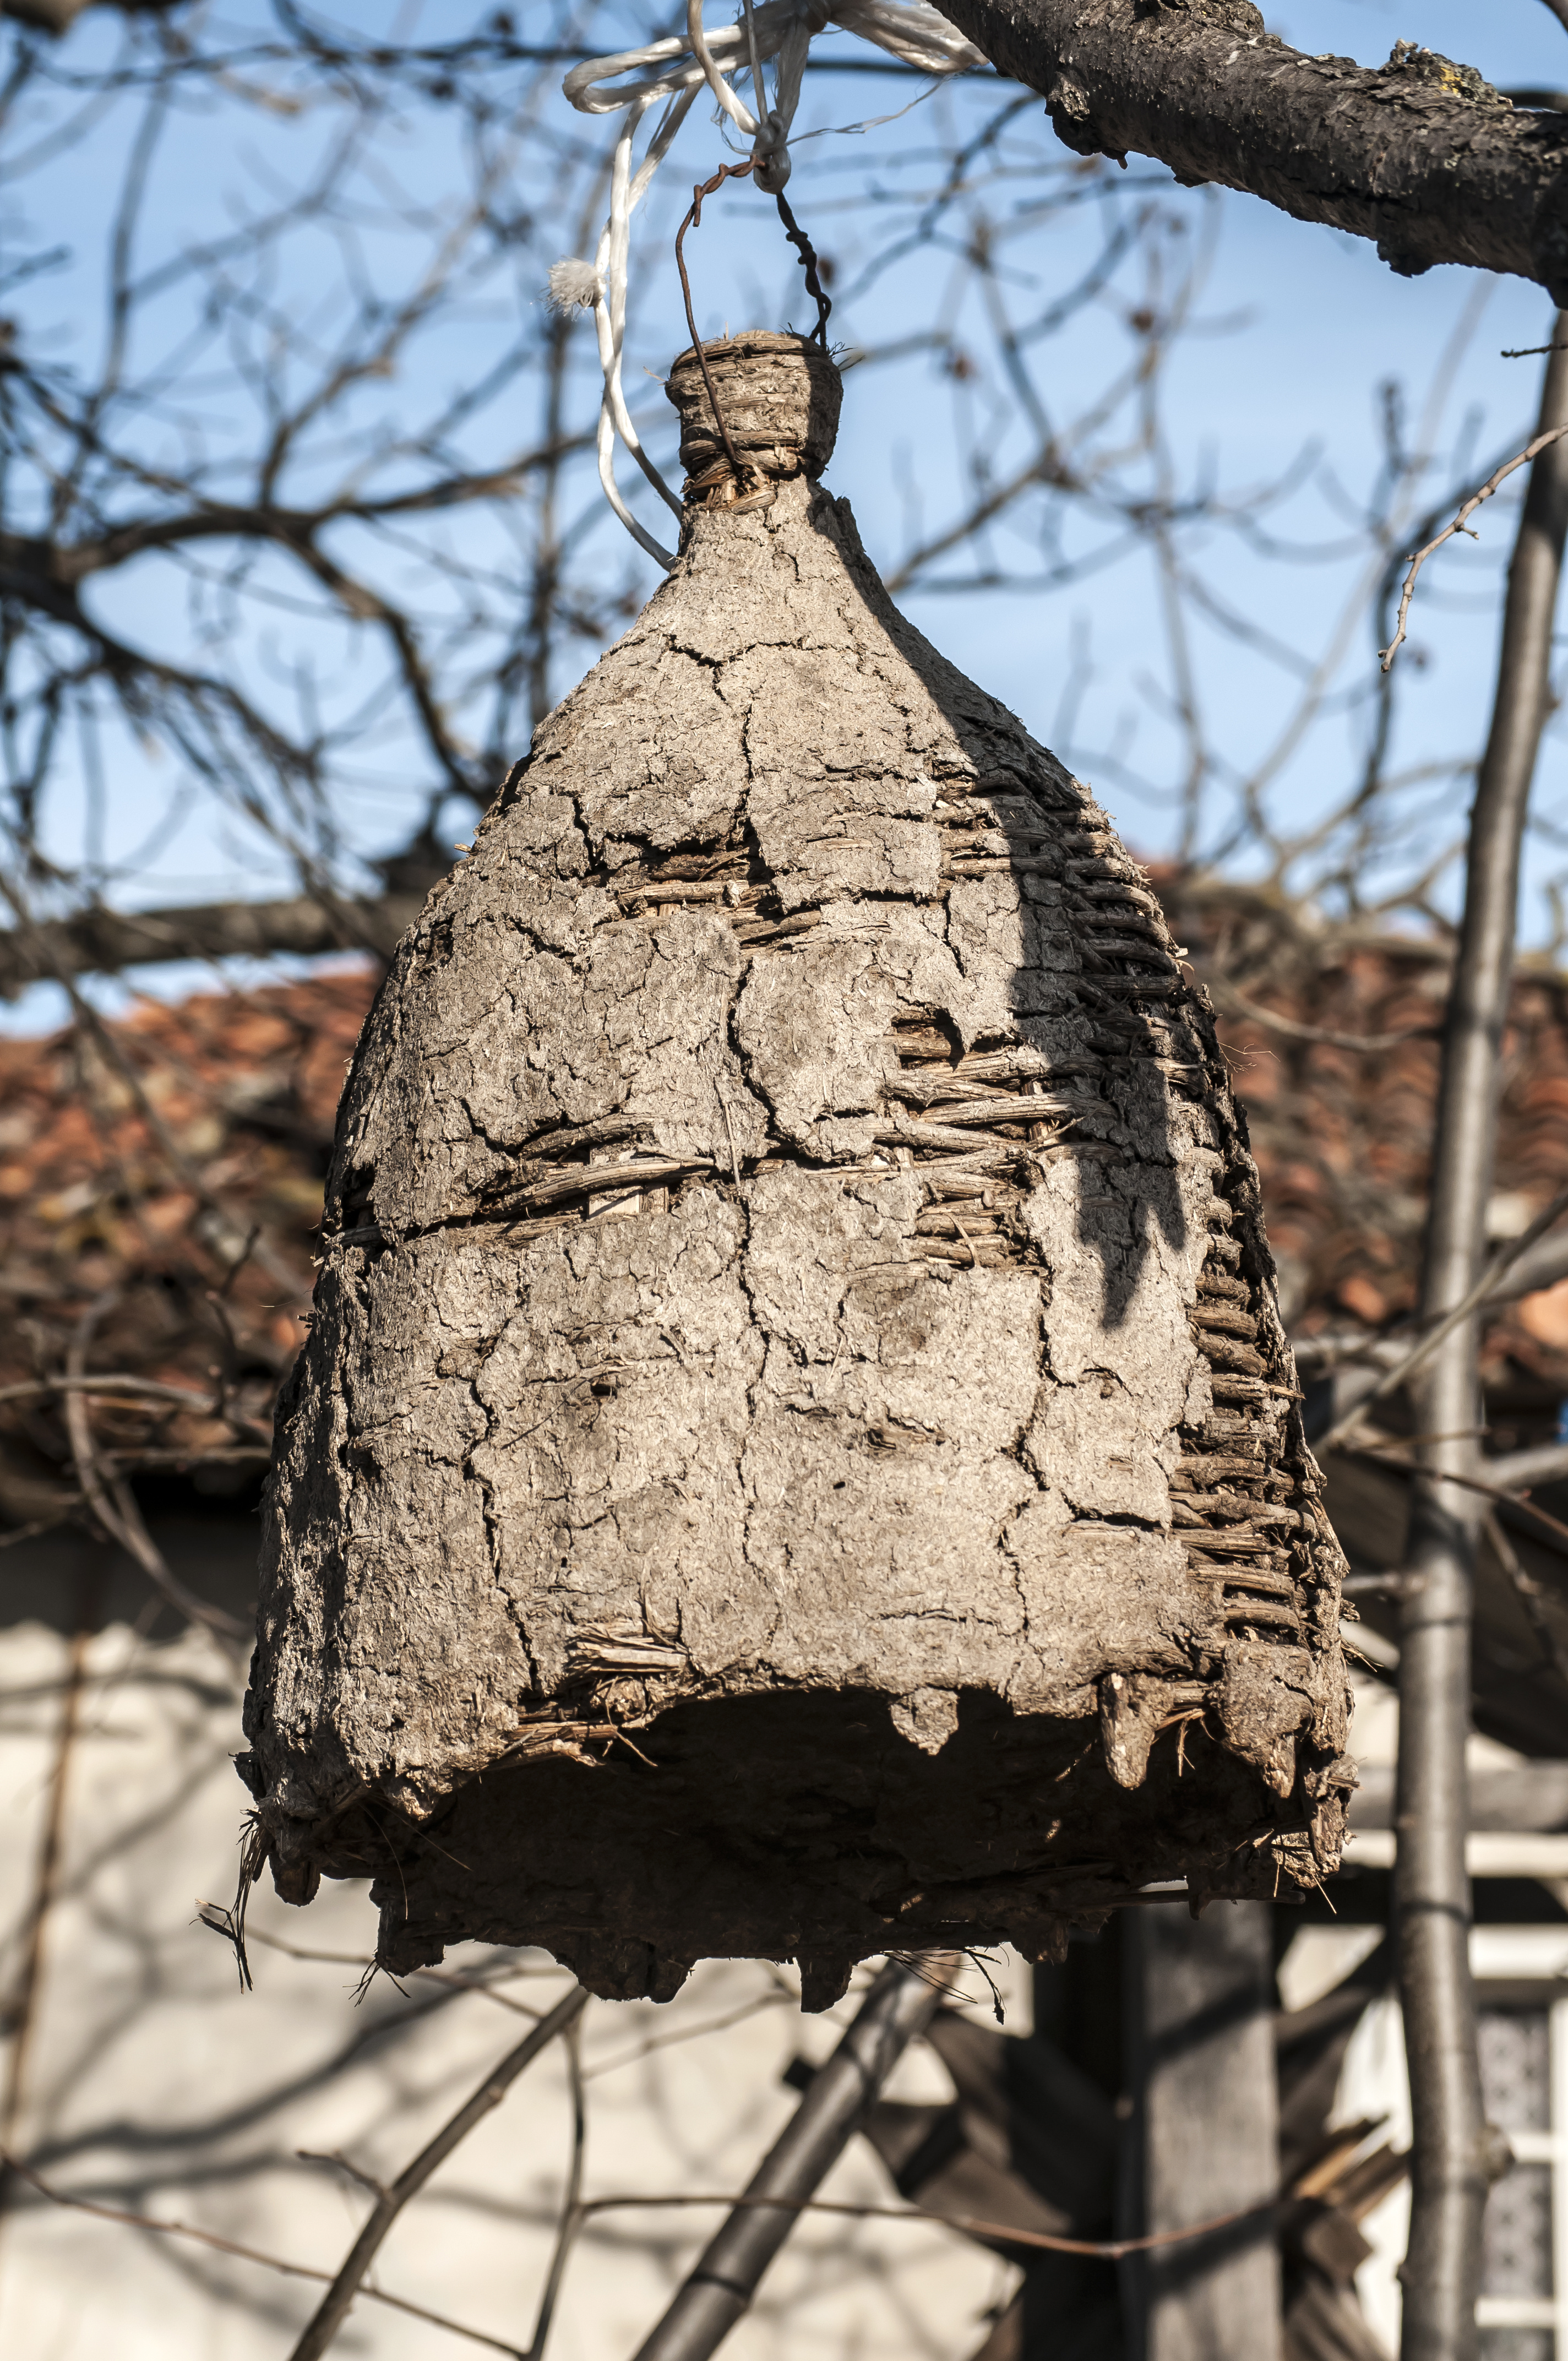 For illustration purposes: Old hanging beehive made of sticks and mud to capture wild bees | Stock image, St. George News